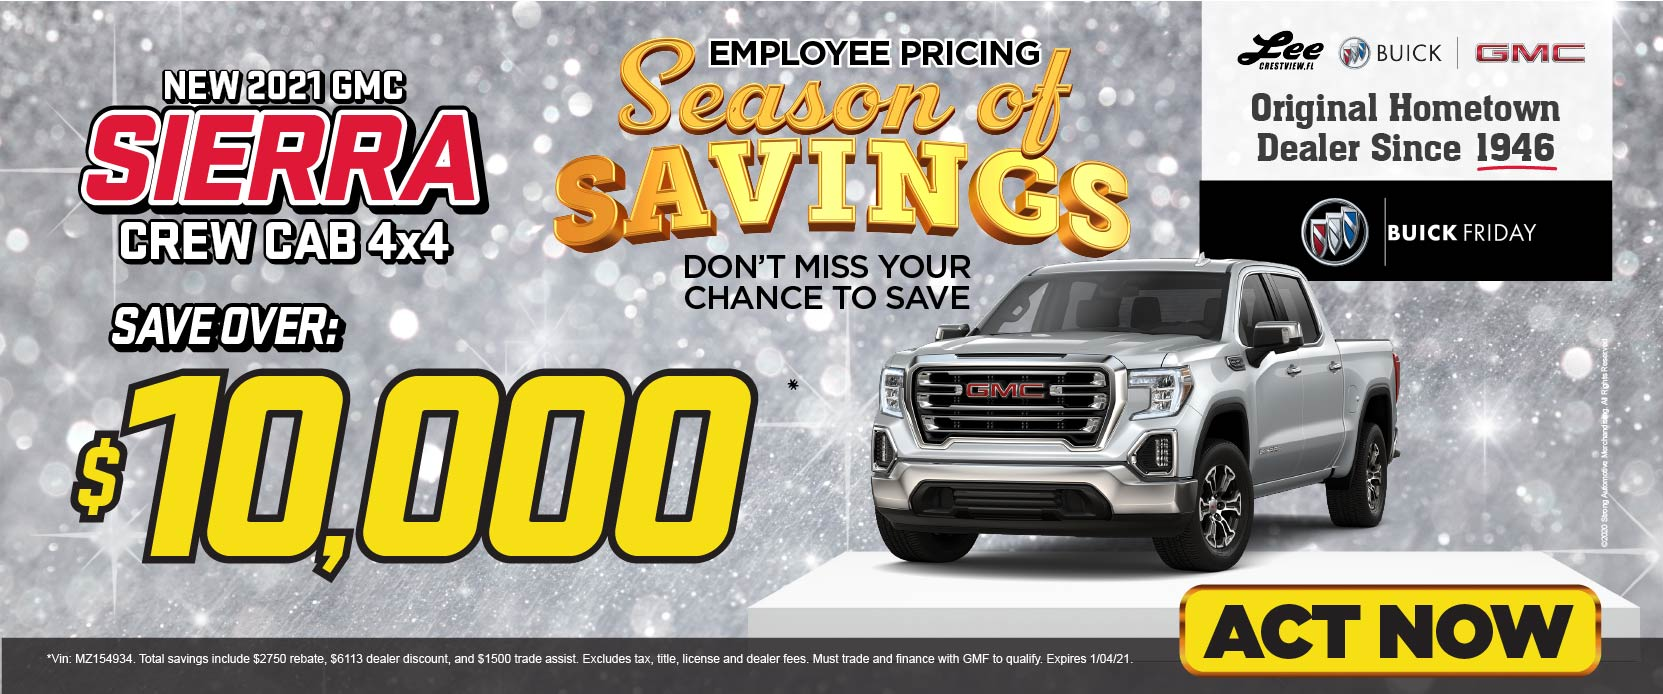 2020 GMC Acadia save over $8,000 Employee Pricing For Everyone | Act Now